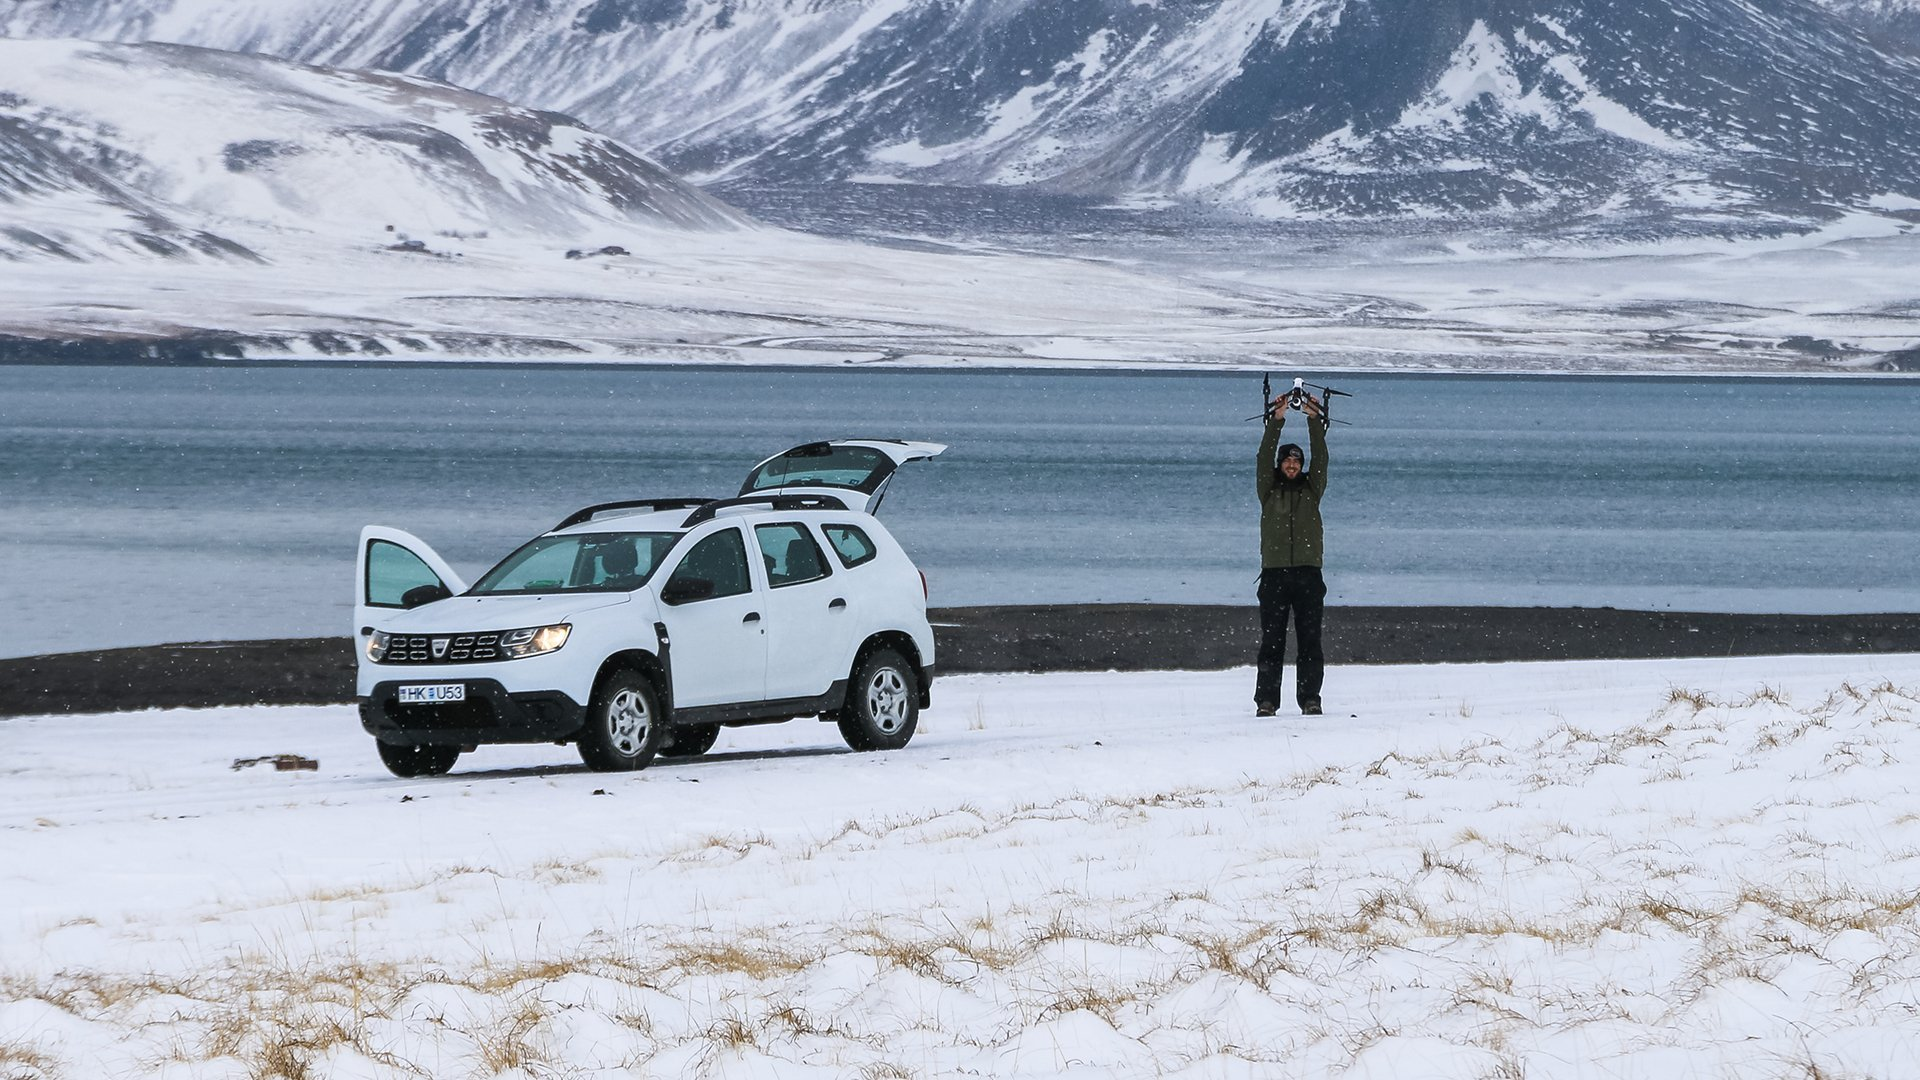 Dan Stood Holding Up Drone Next to Car in Icy Environment